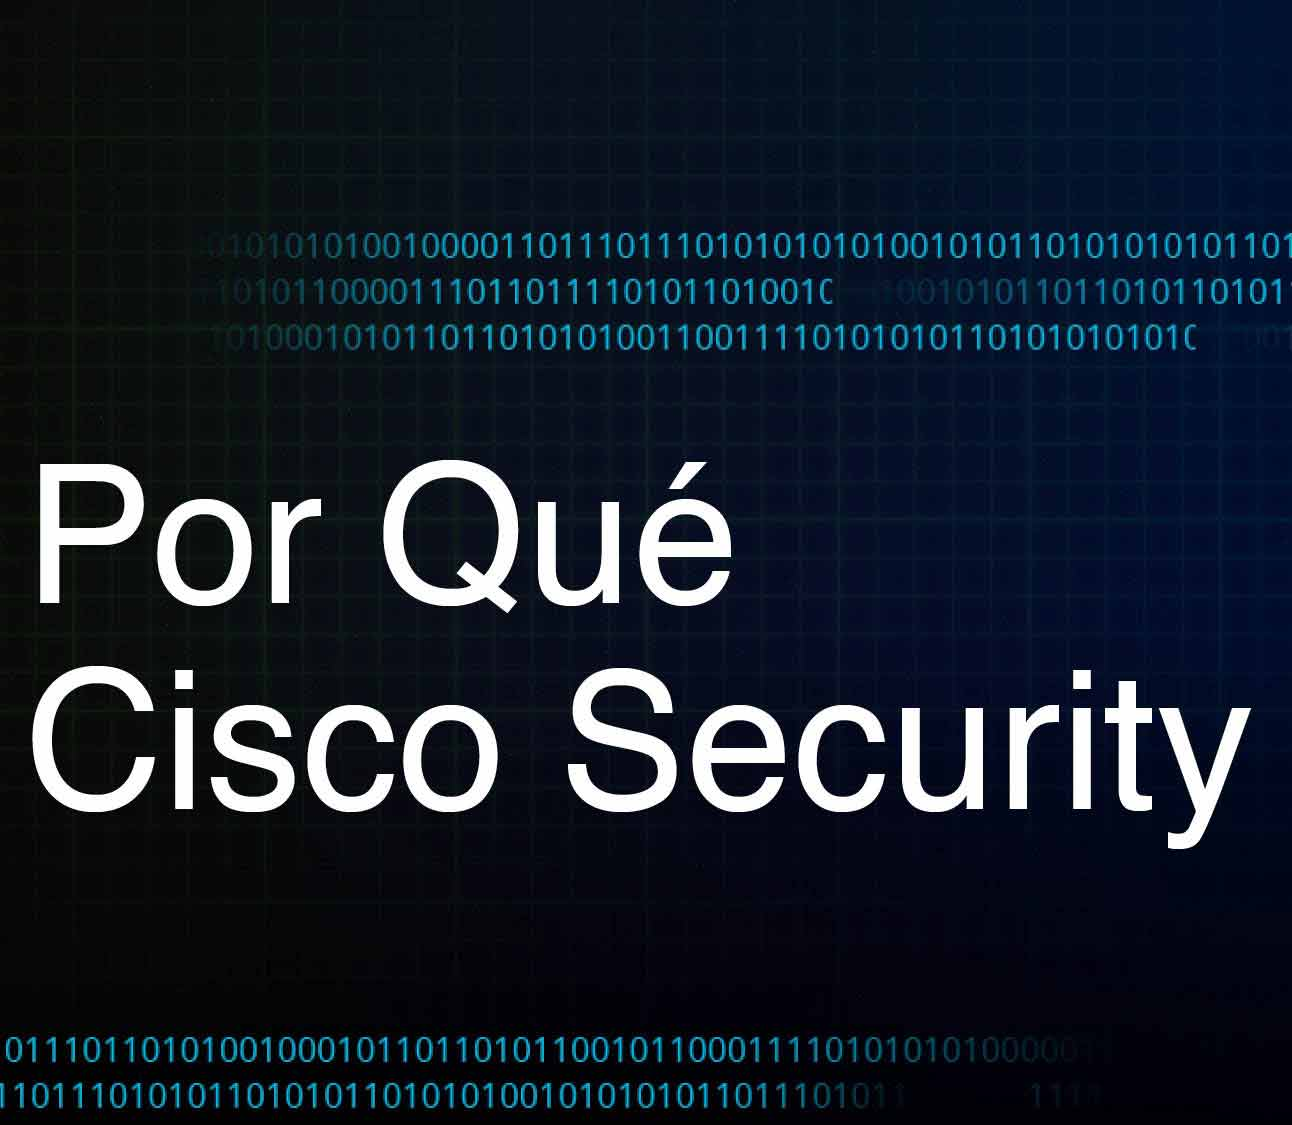 Por Qué Security Featured Image